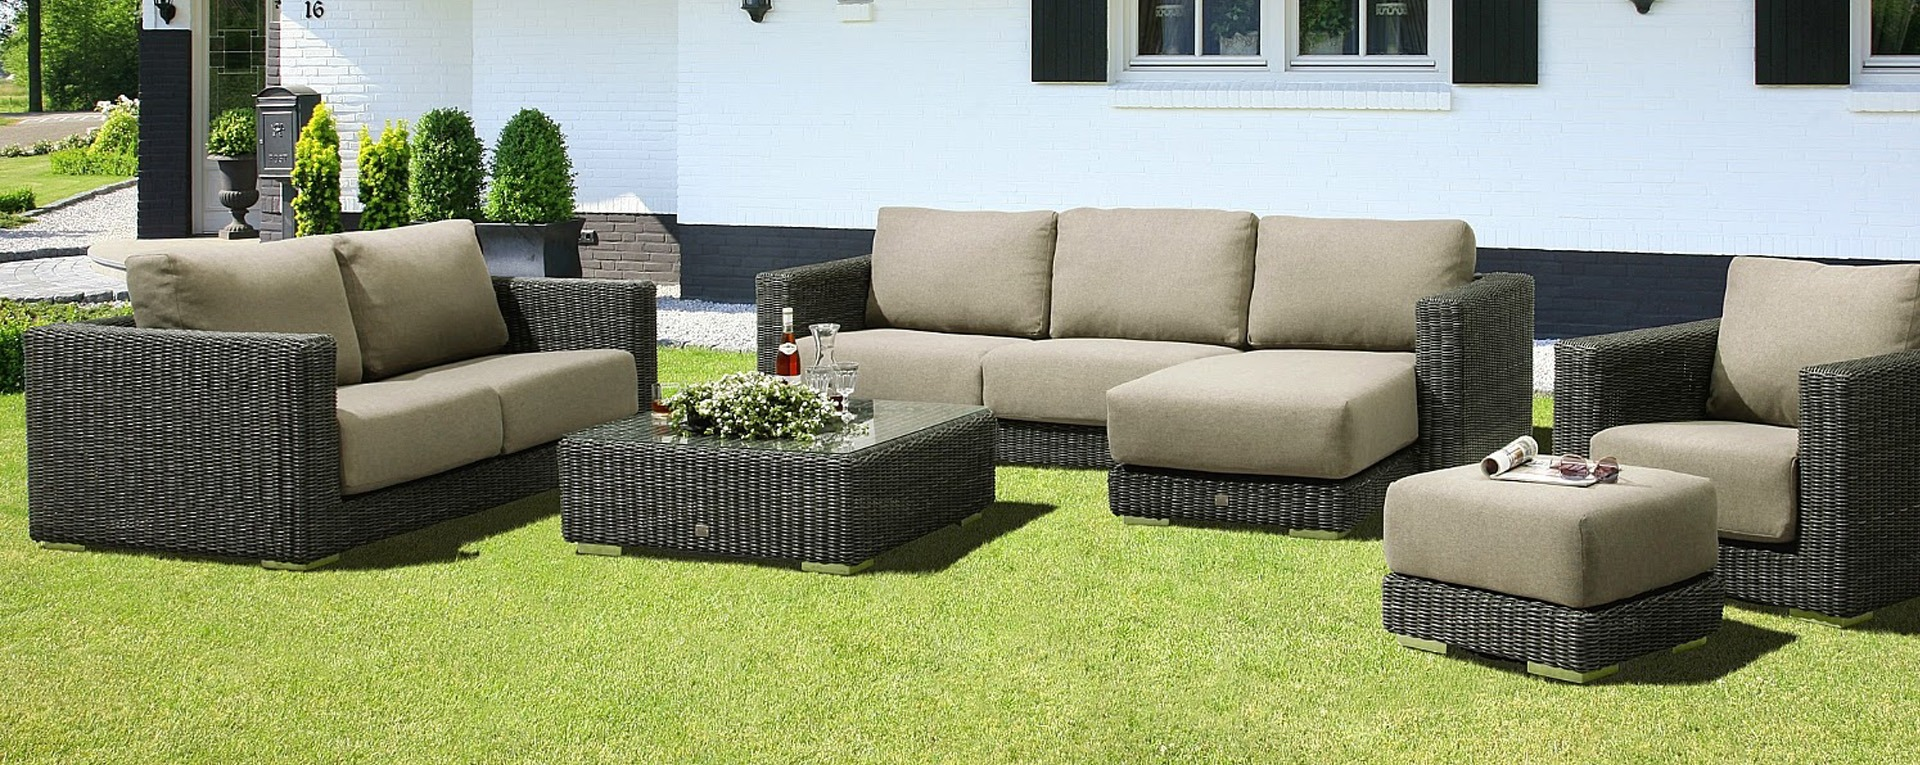 4 seasons outdoor somerset loungeset charcoal best deal tuinmeubelen. Black Bedroom Furniture Sets. Home Design Ideas